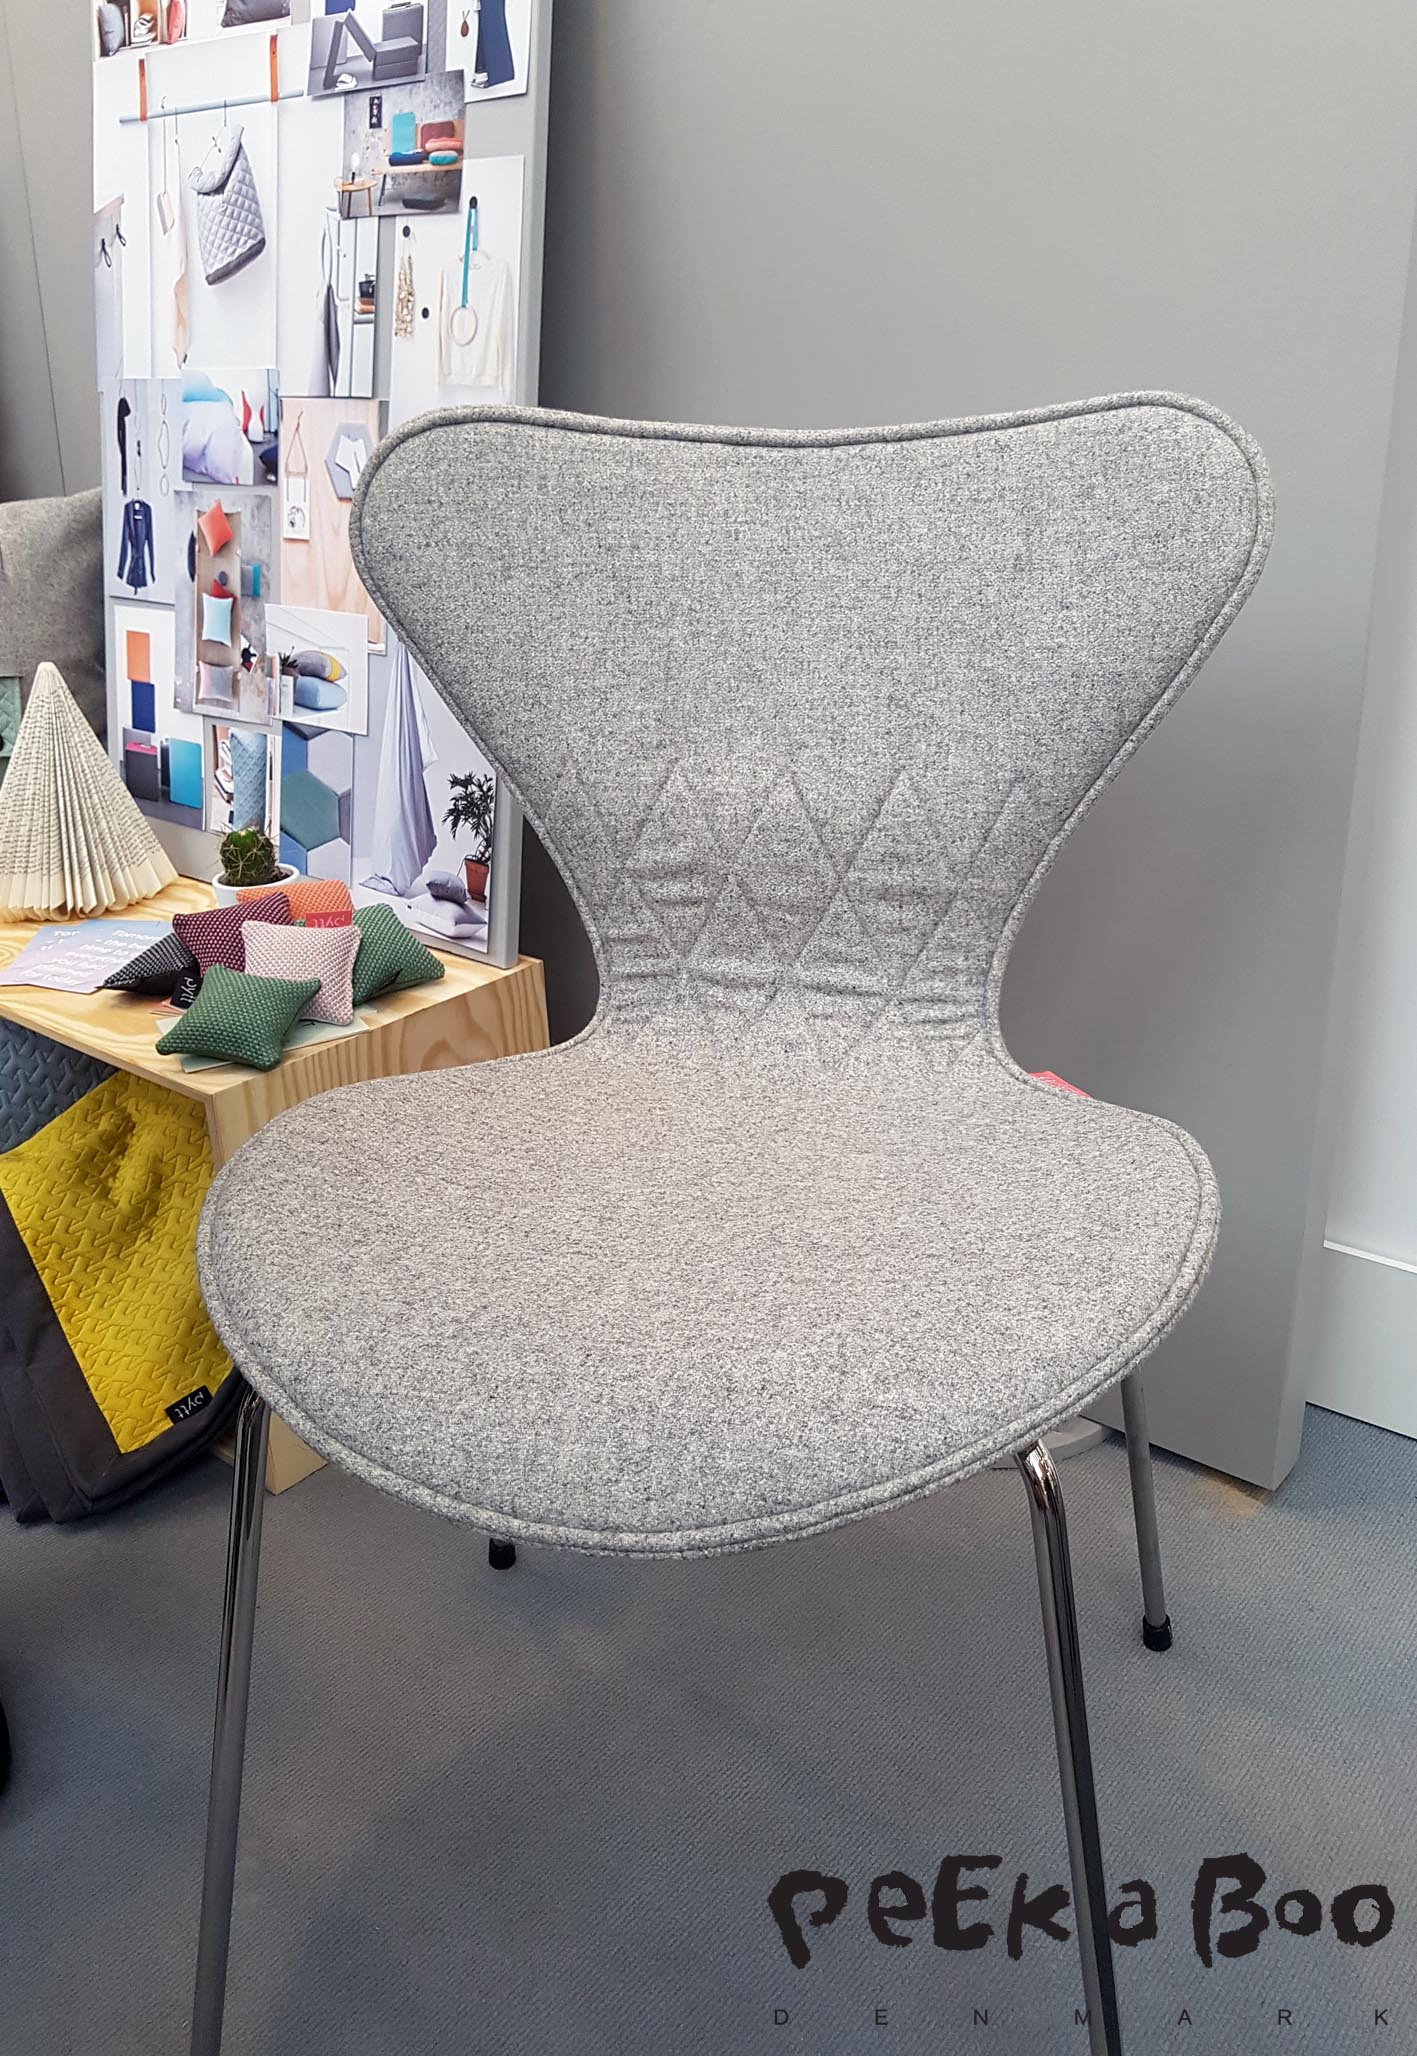 In ever Danish home this 7'er chair by Arne Jacobsen is to be found, now PYTT have made them a full cover, they are absolutely they are absolutely brilliant.